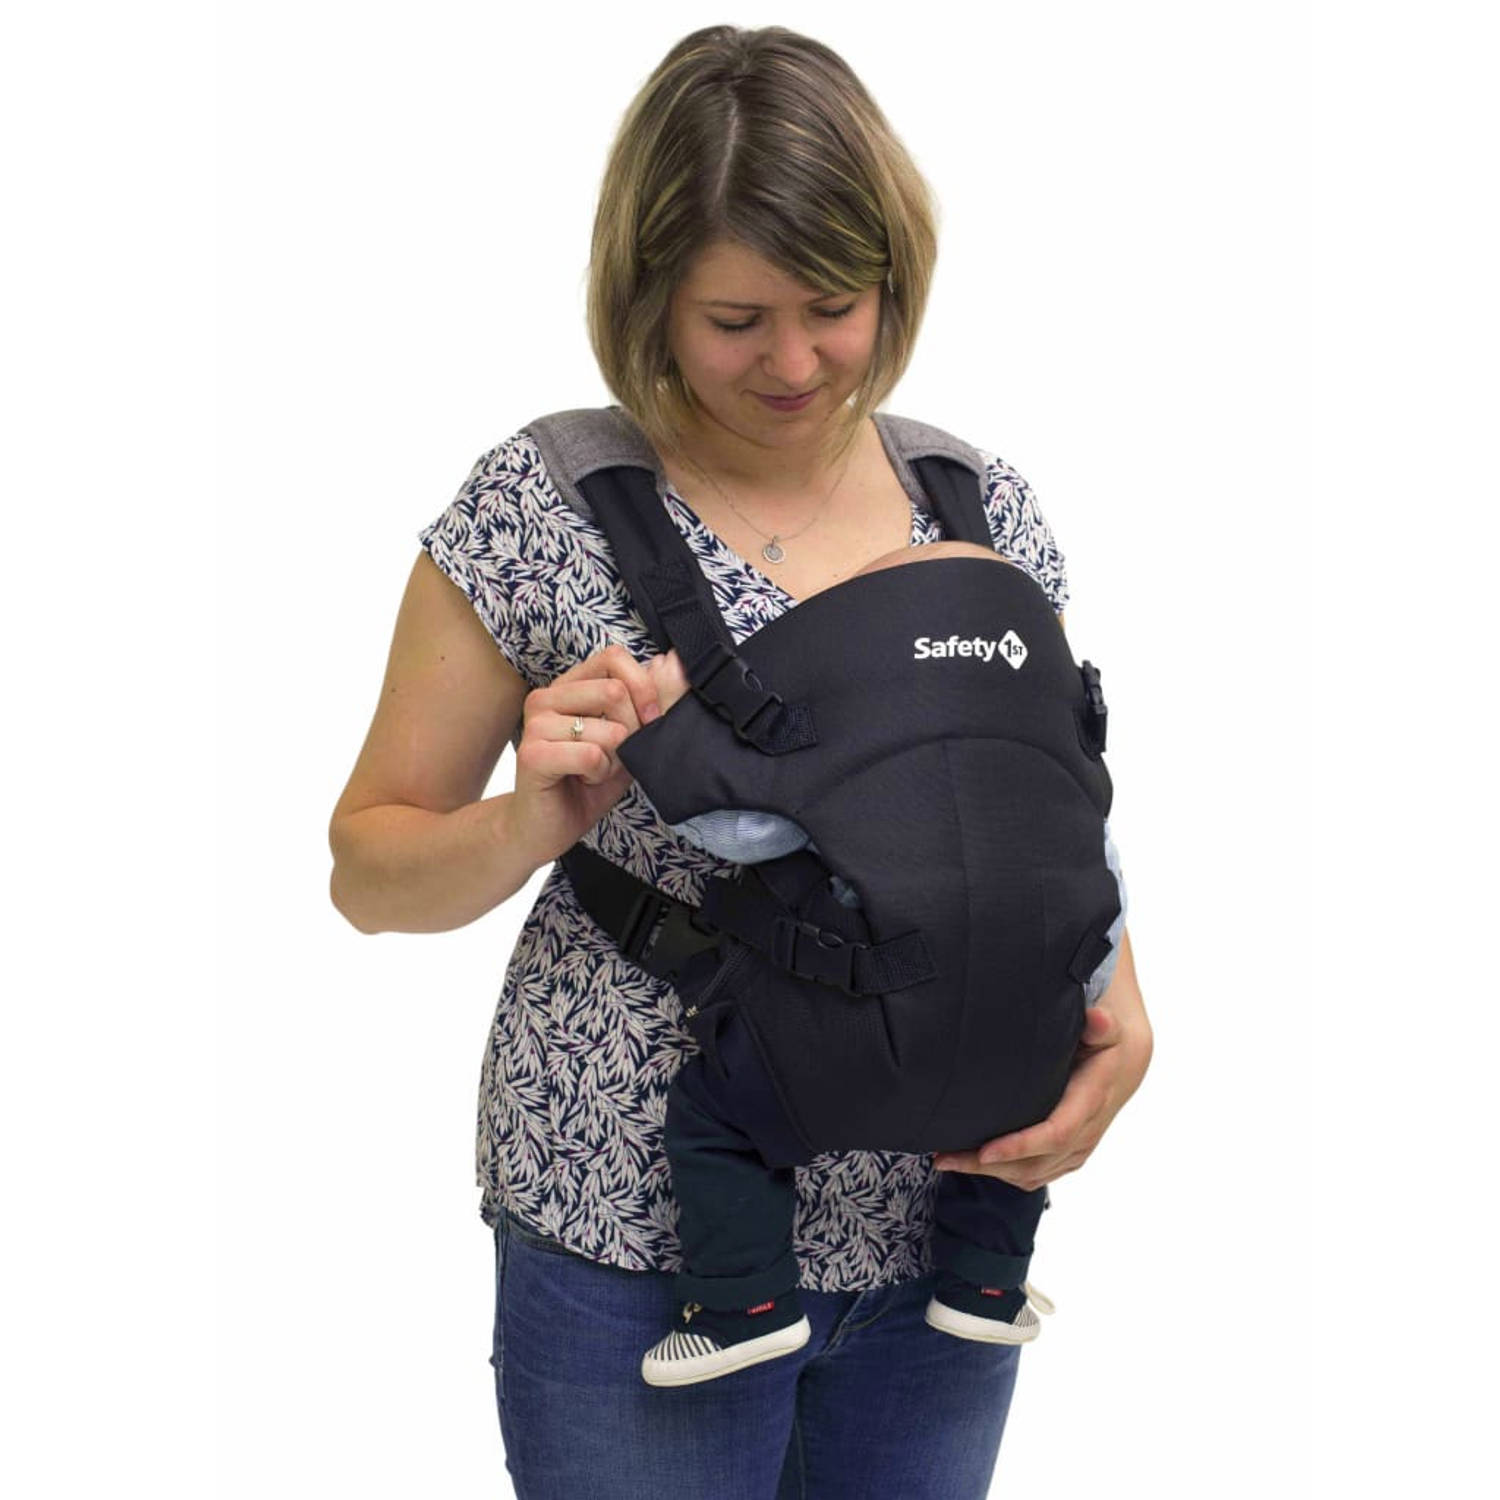 Safety 1st Babydrager Mimoso zwart 2600666000